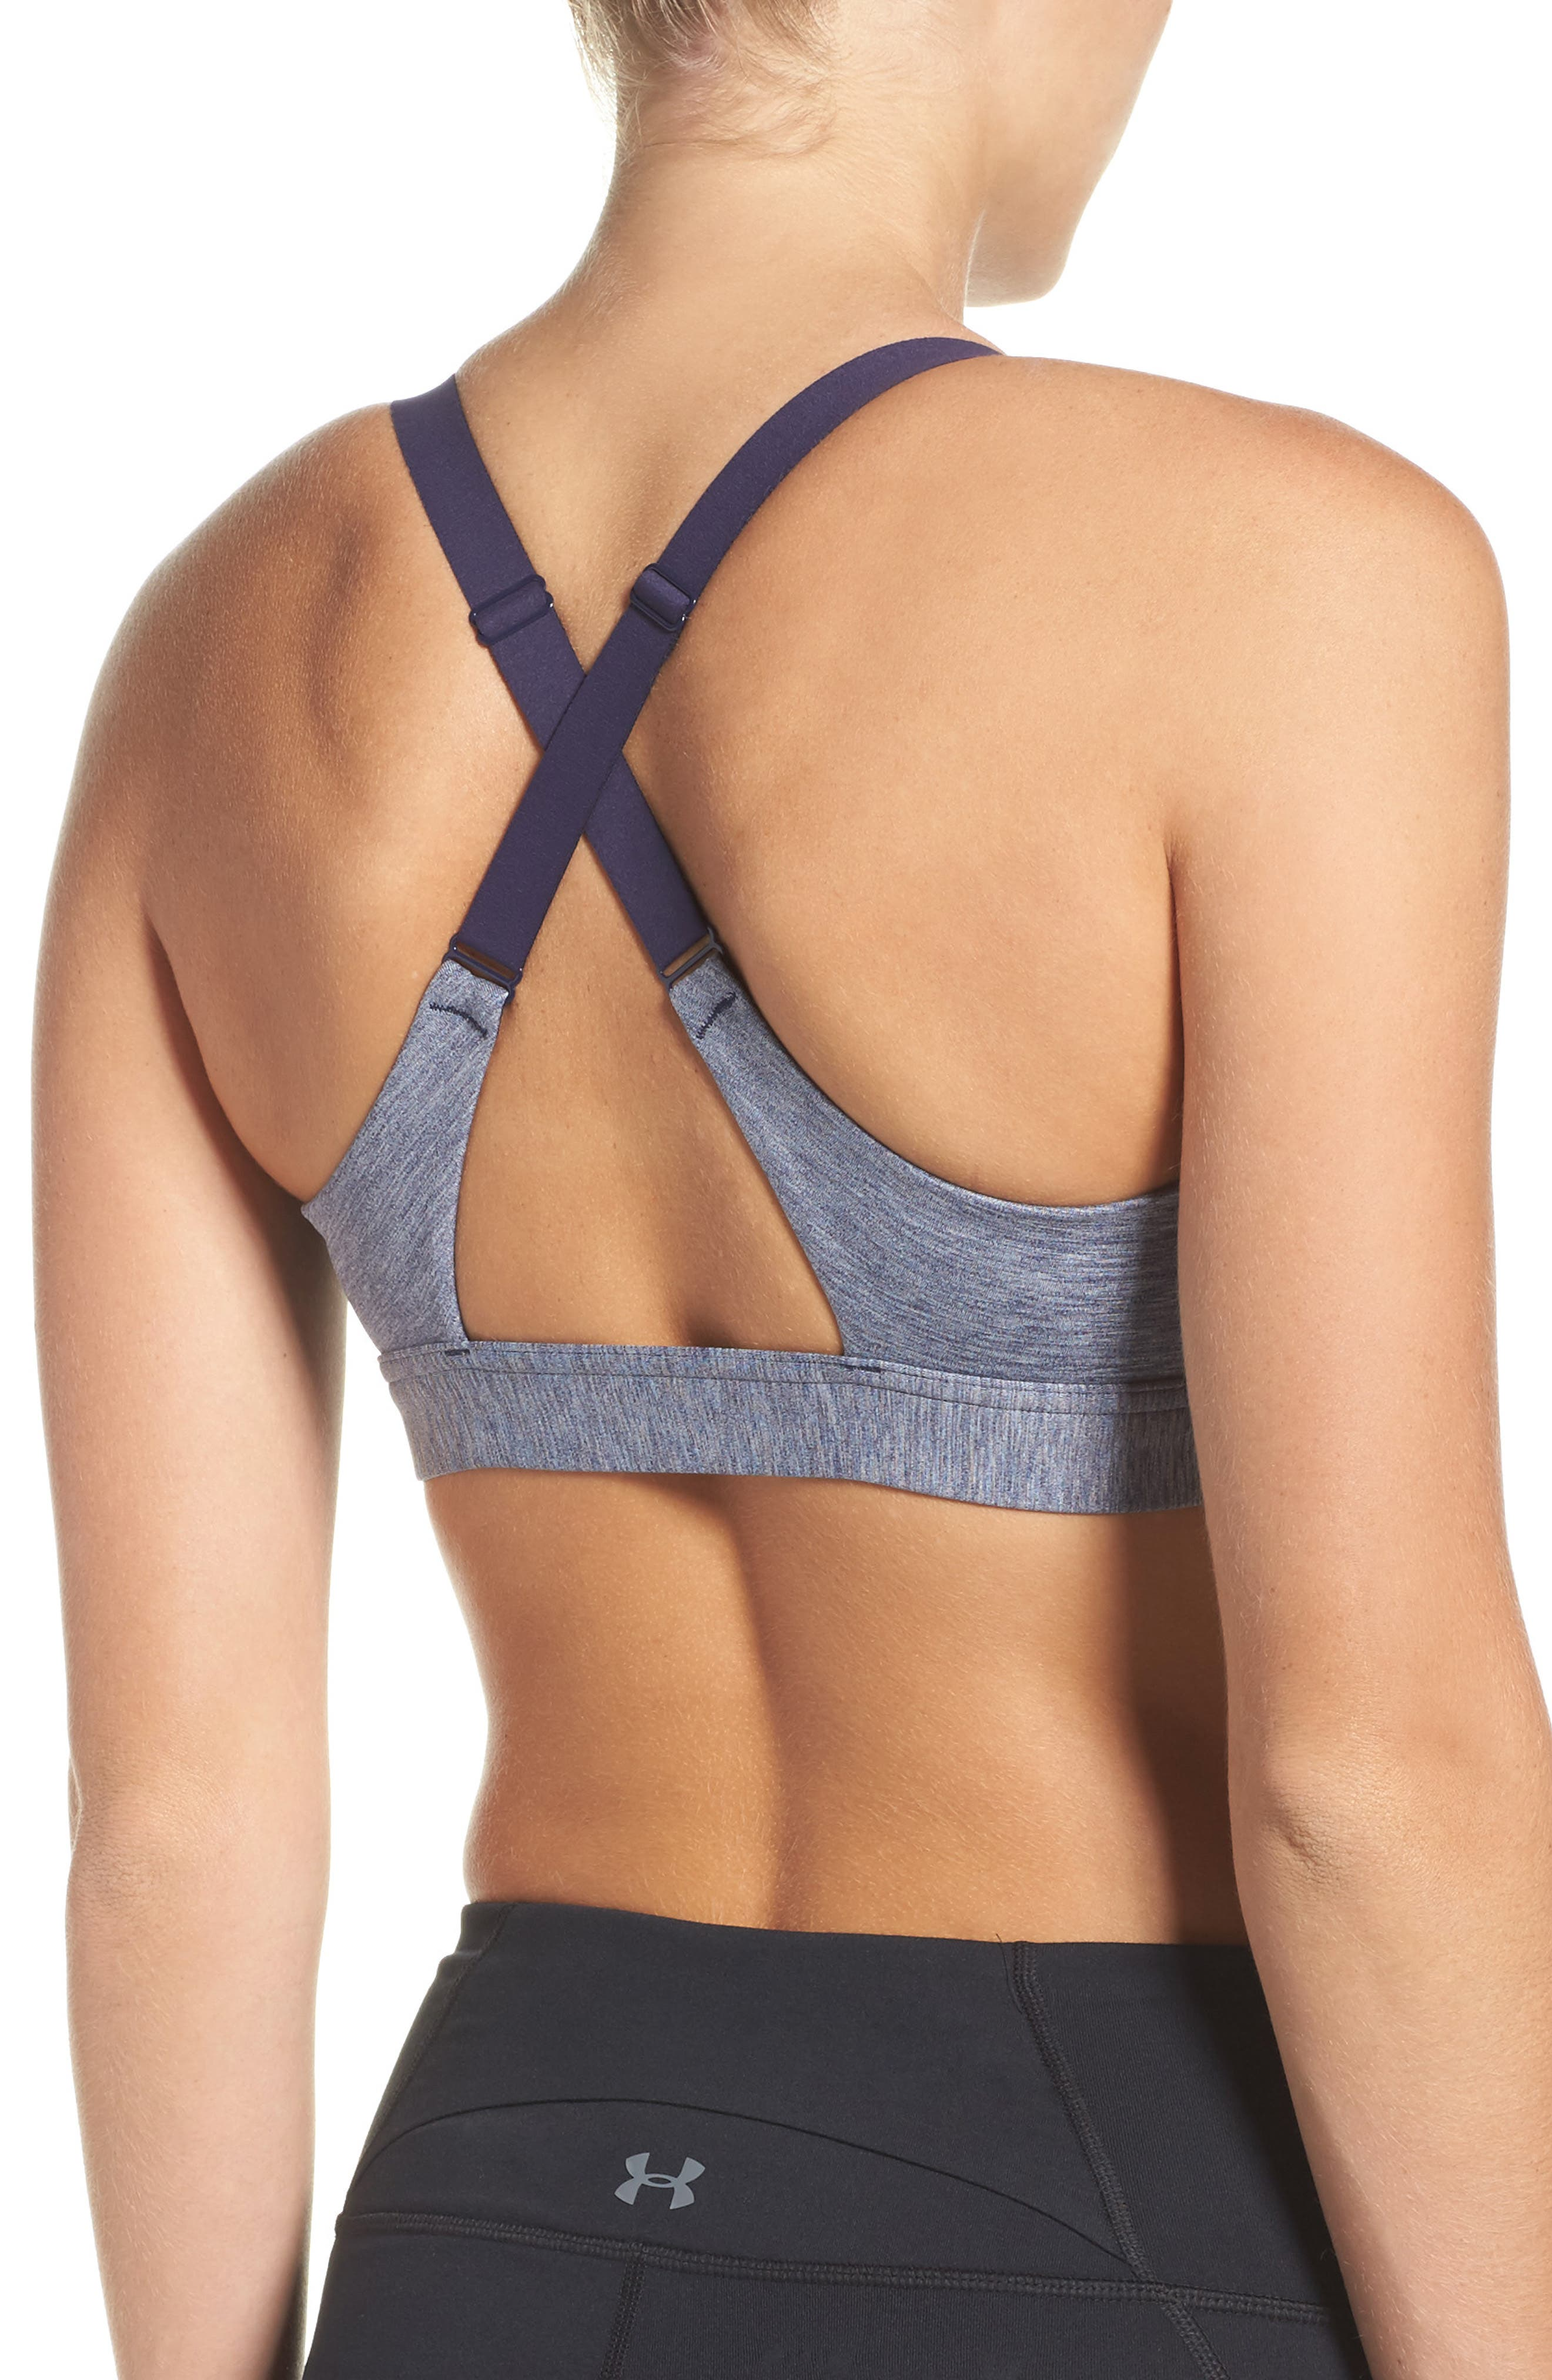 Eclipse Sports Bra,                             Alternate thumbnail 2, color,                             Navy/ Light Heather/ Silver